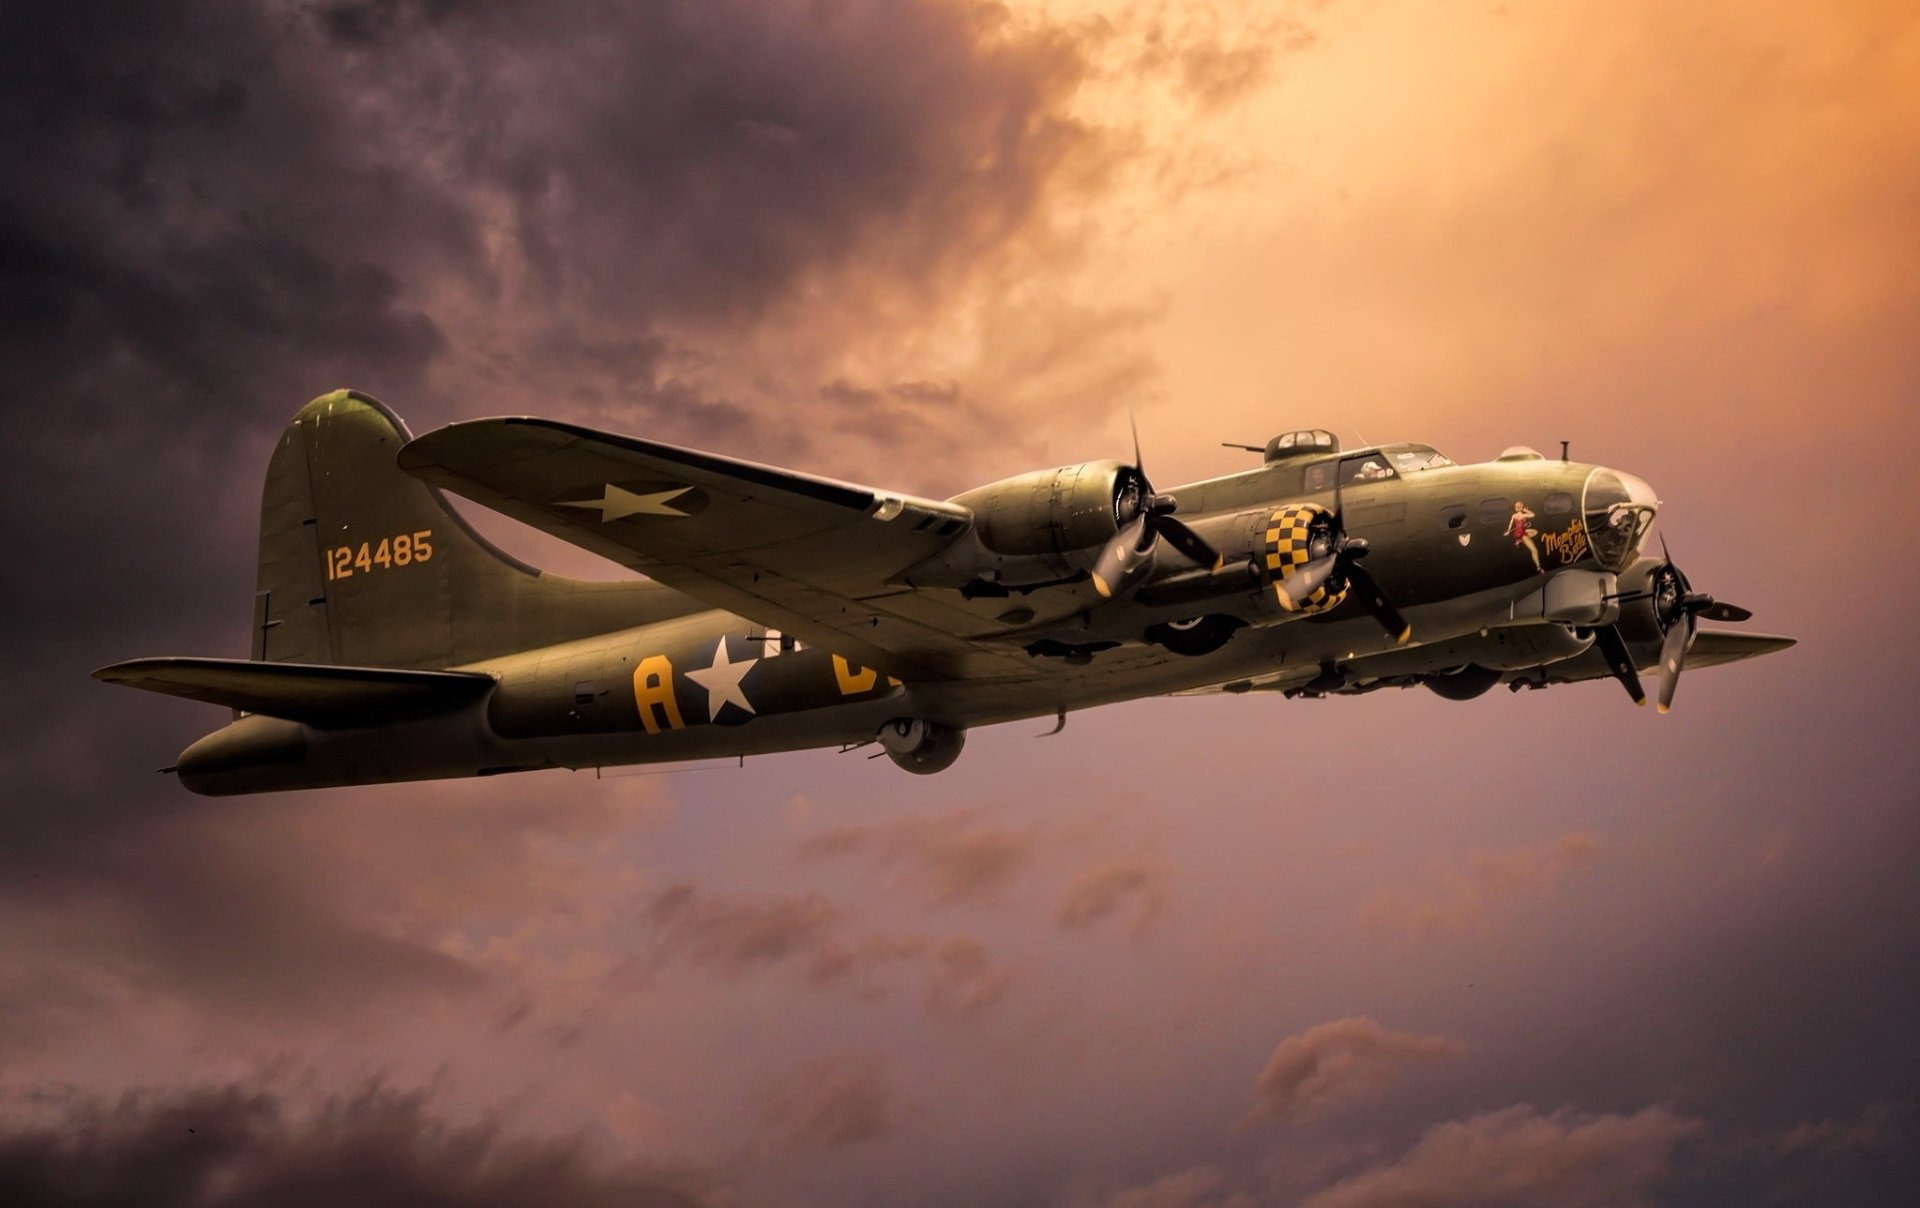 Military - Boeing B-17 Flying Fortress  Bomber Warplane Aircraft Air Force Airplane Military Wallpaper